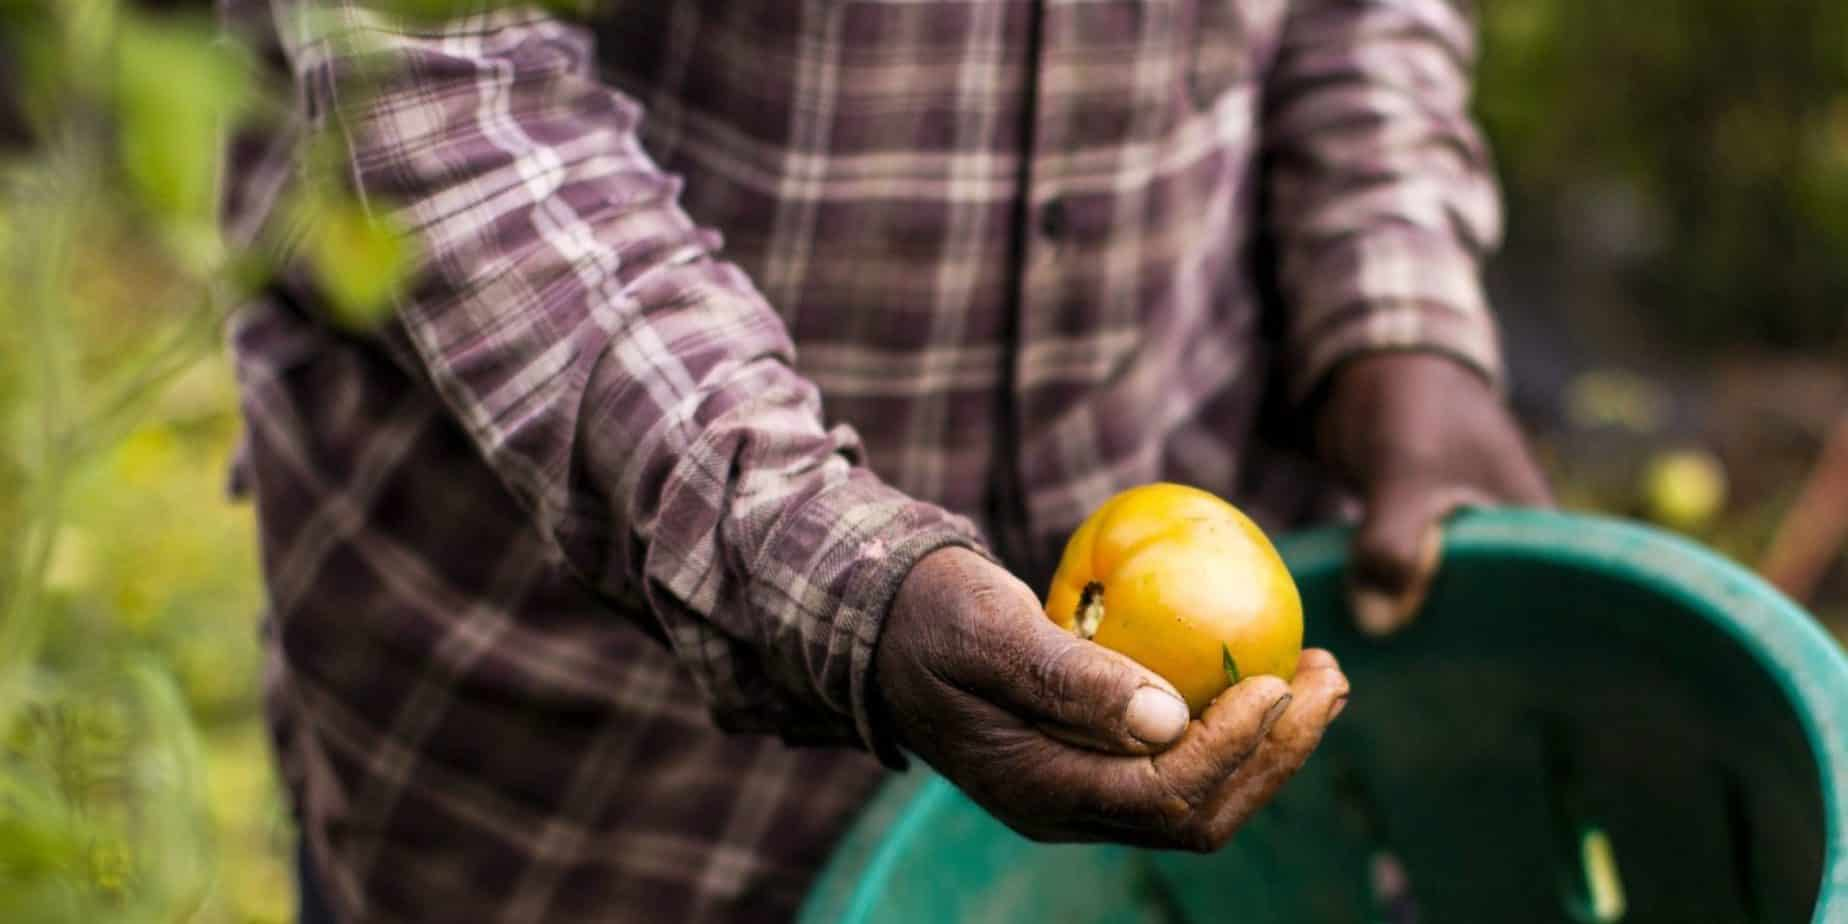 Agriculture is one sector that's no stranger to adverse external factors presenting risk that threatens business continuity. However, Covid-19 has had a severe knock-out effect on many up-and-coming farmers. Photo: Supplied/Getty Images